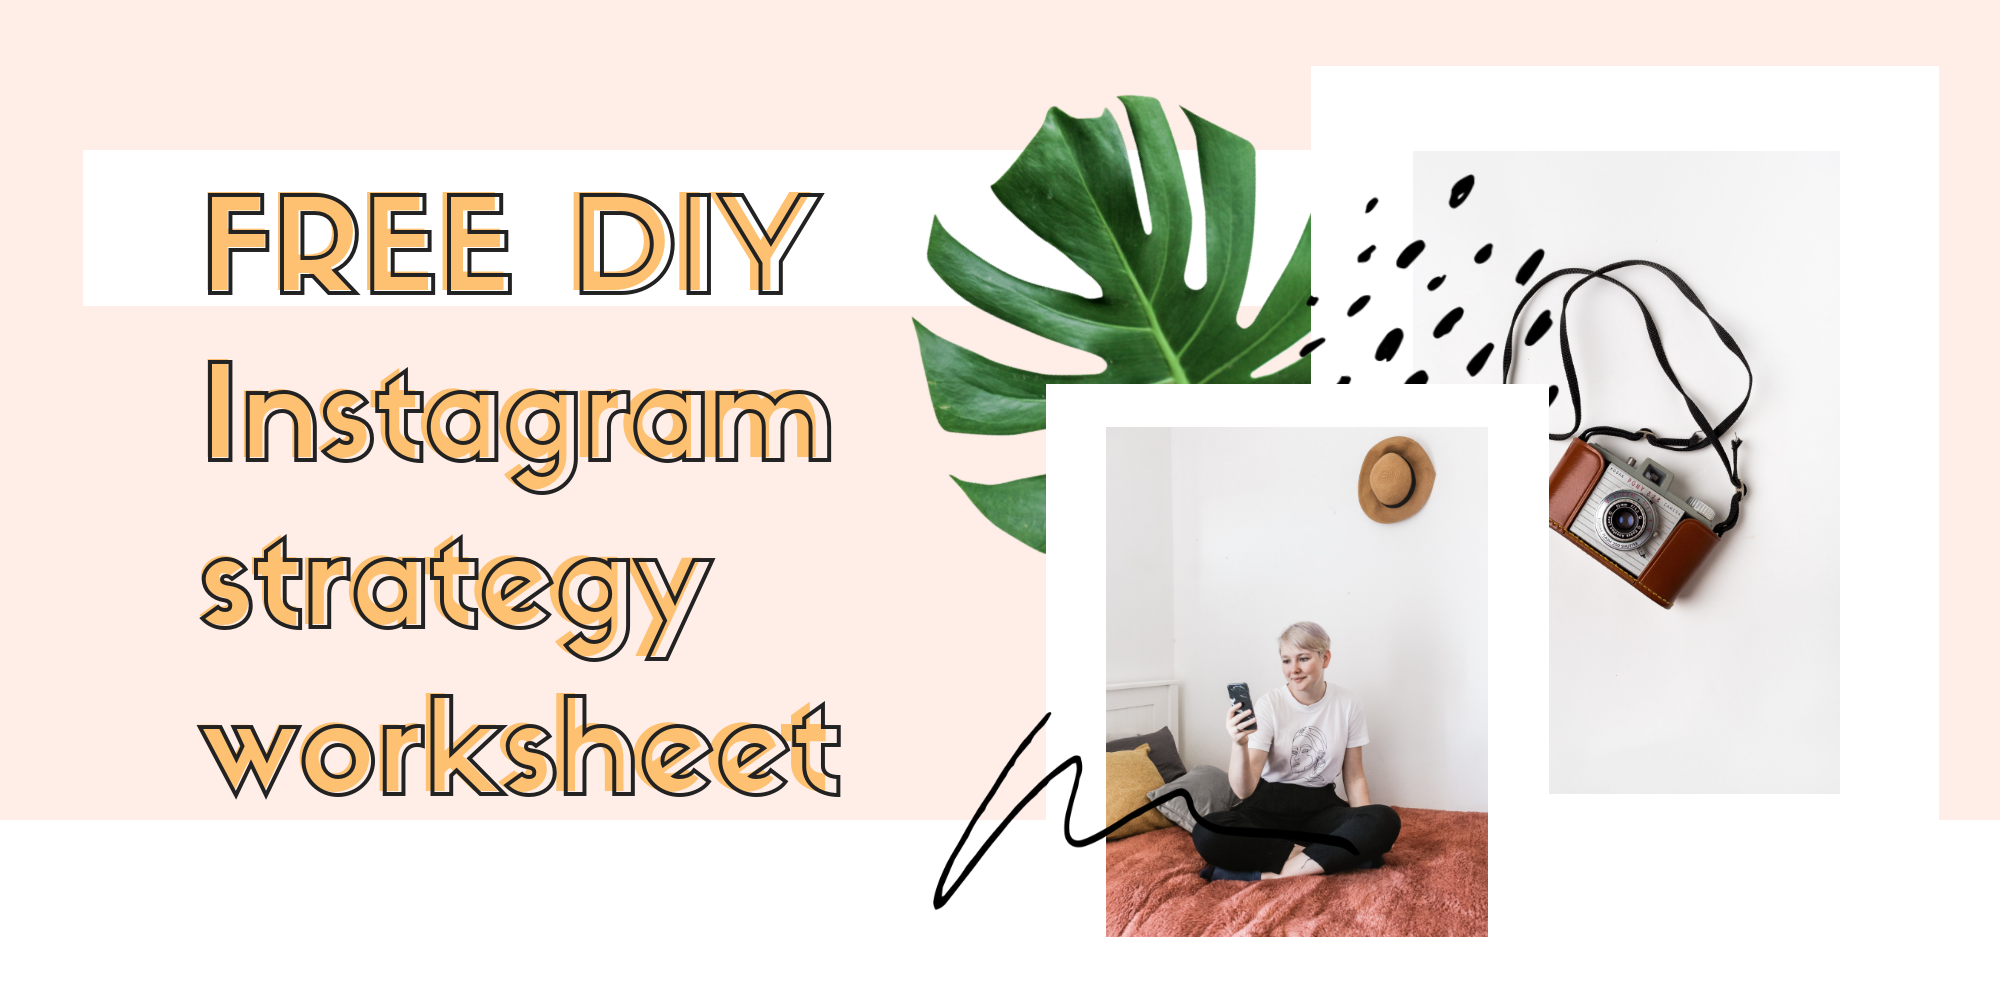 get monthly love from us - sign up for our monthly social media newsletter from Lizzie, the founder and snag a free DIY instagram strategy workbook!